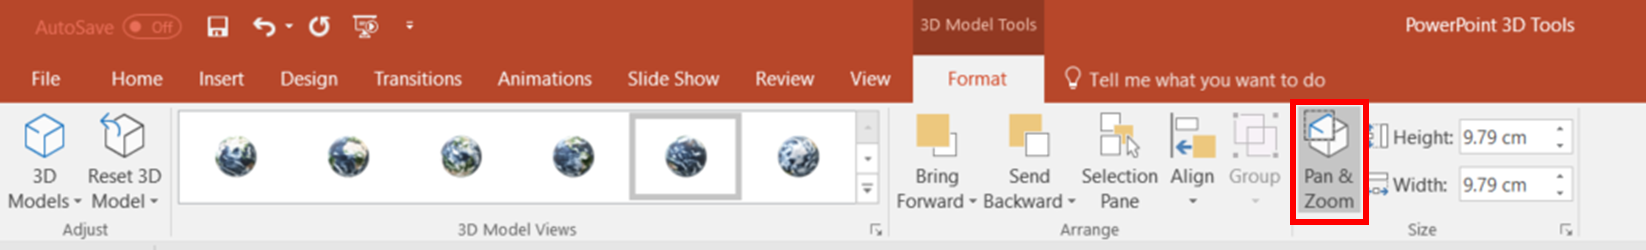 Pan and Zoom format in PowerPoint 3D model